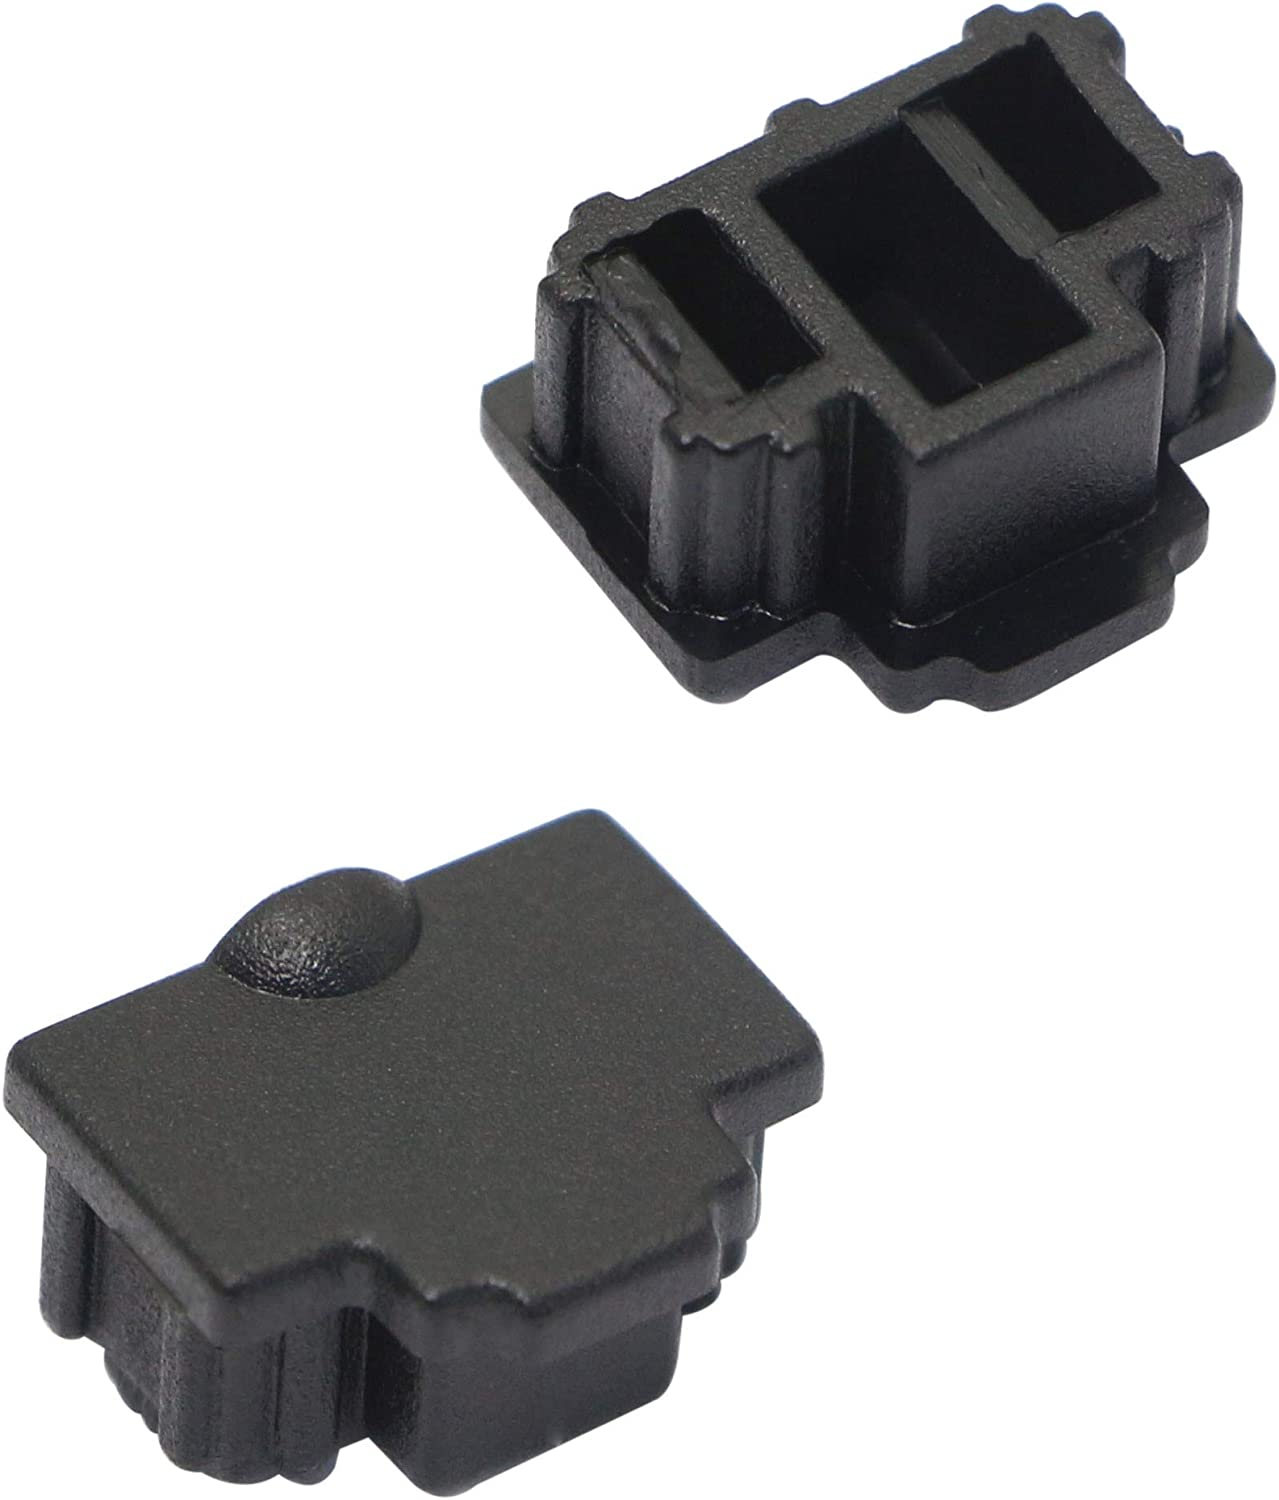 50PCS RJ45 Anti Dust Cover Cap Protector Protects Ethernet Hub Port by FENGQLONG Black-Small